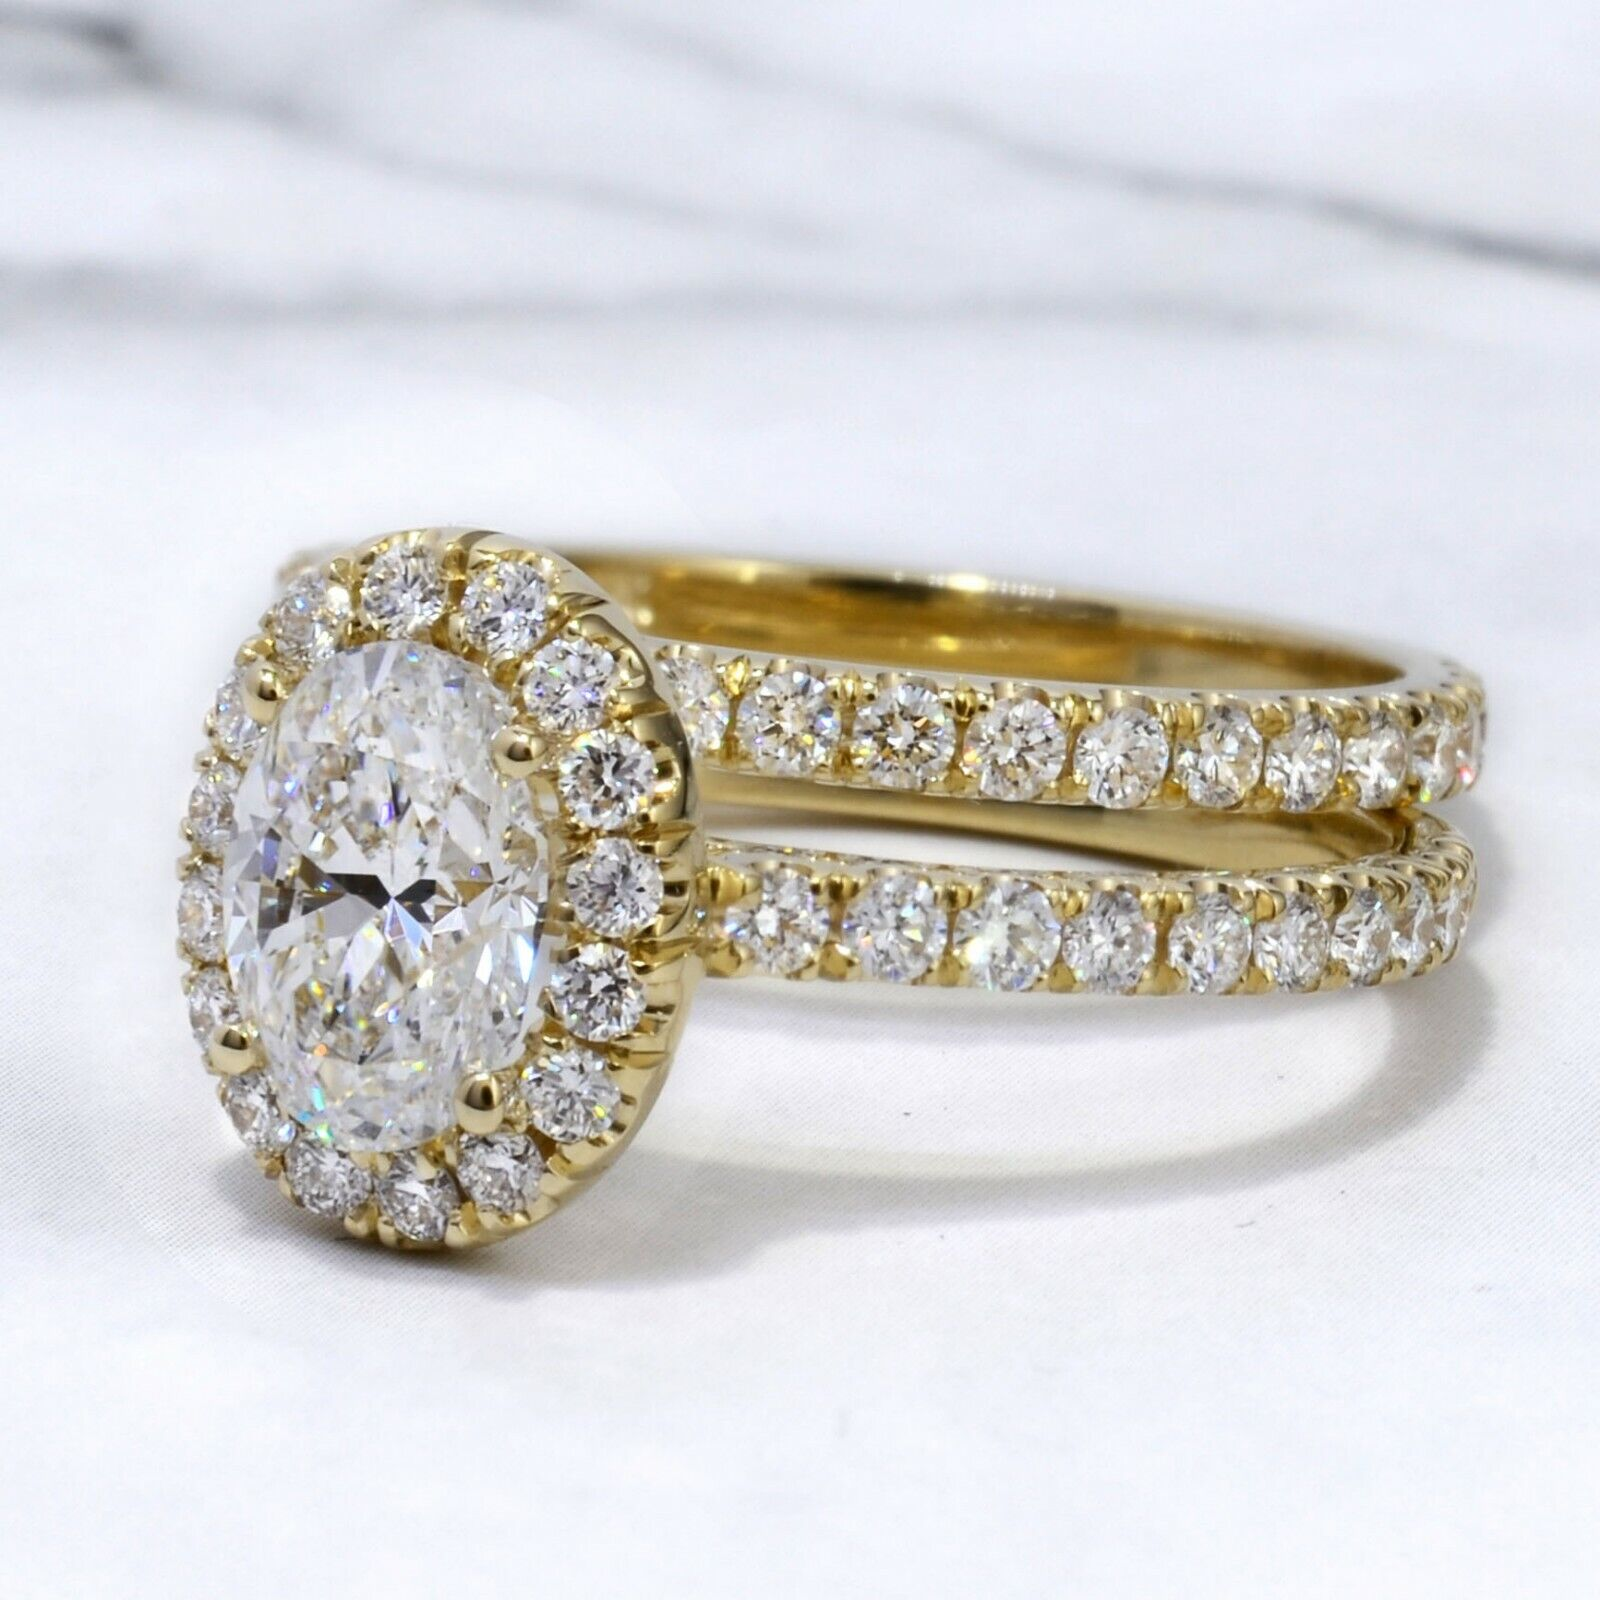 3.00 TCW Natural Oval Cut Halo Pave Diamond Engagement Wedding Set - GIA 2